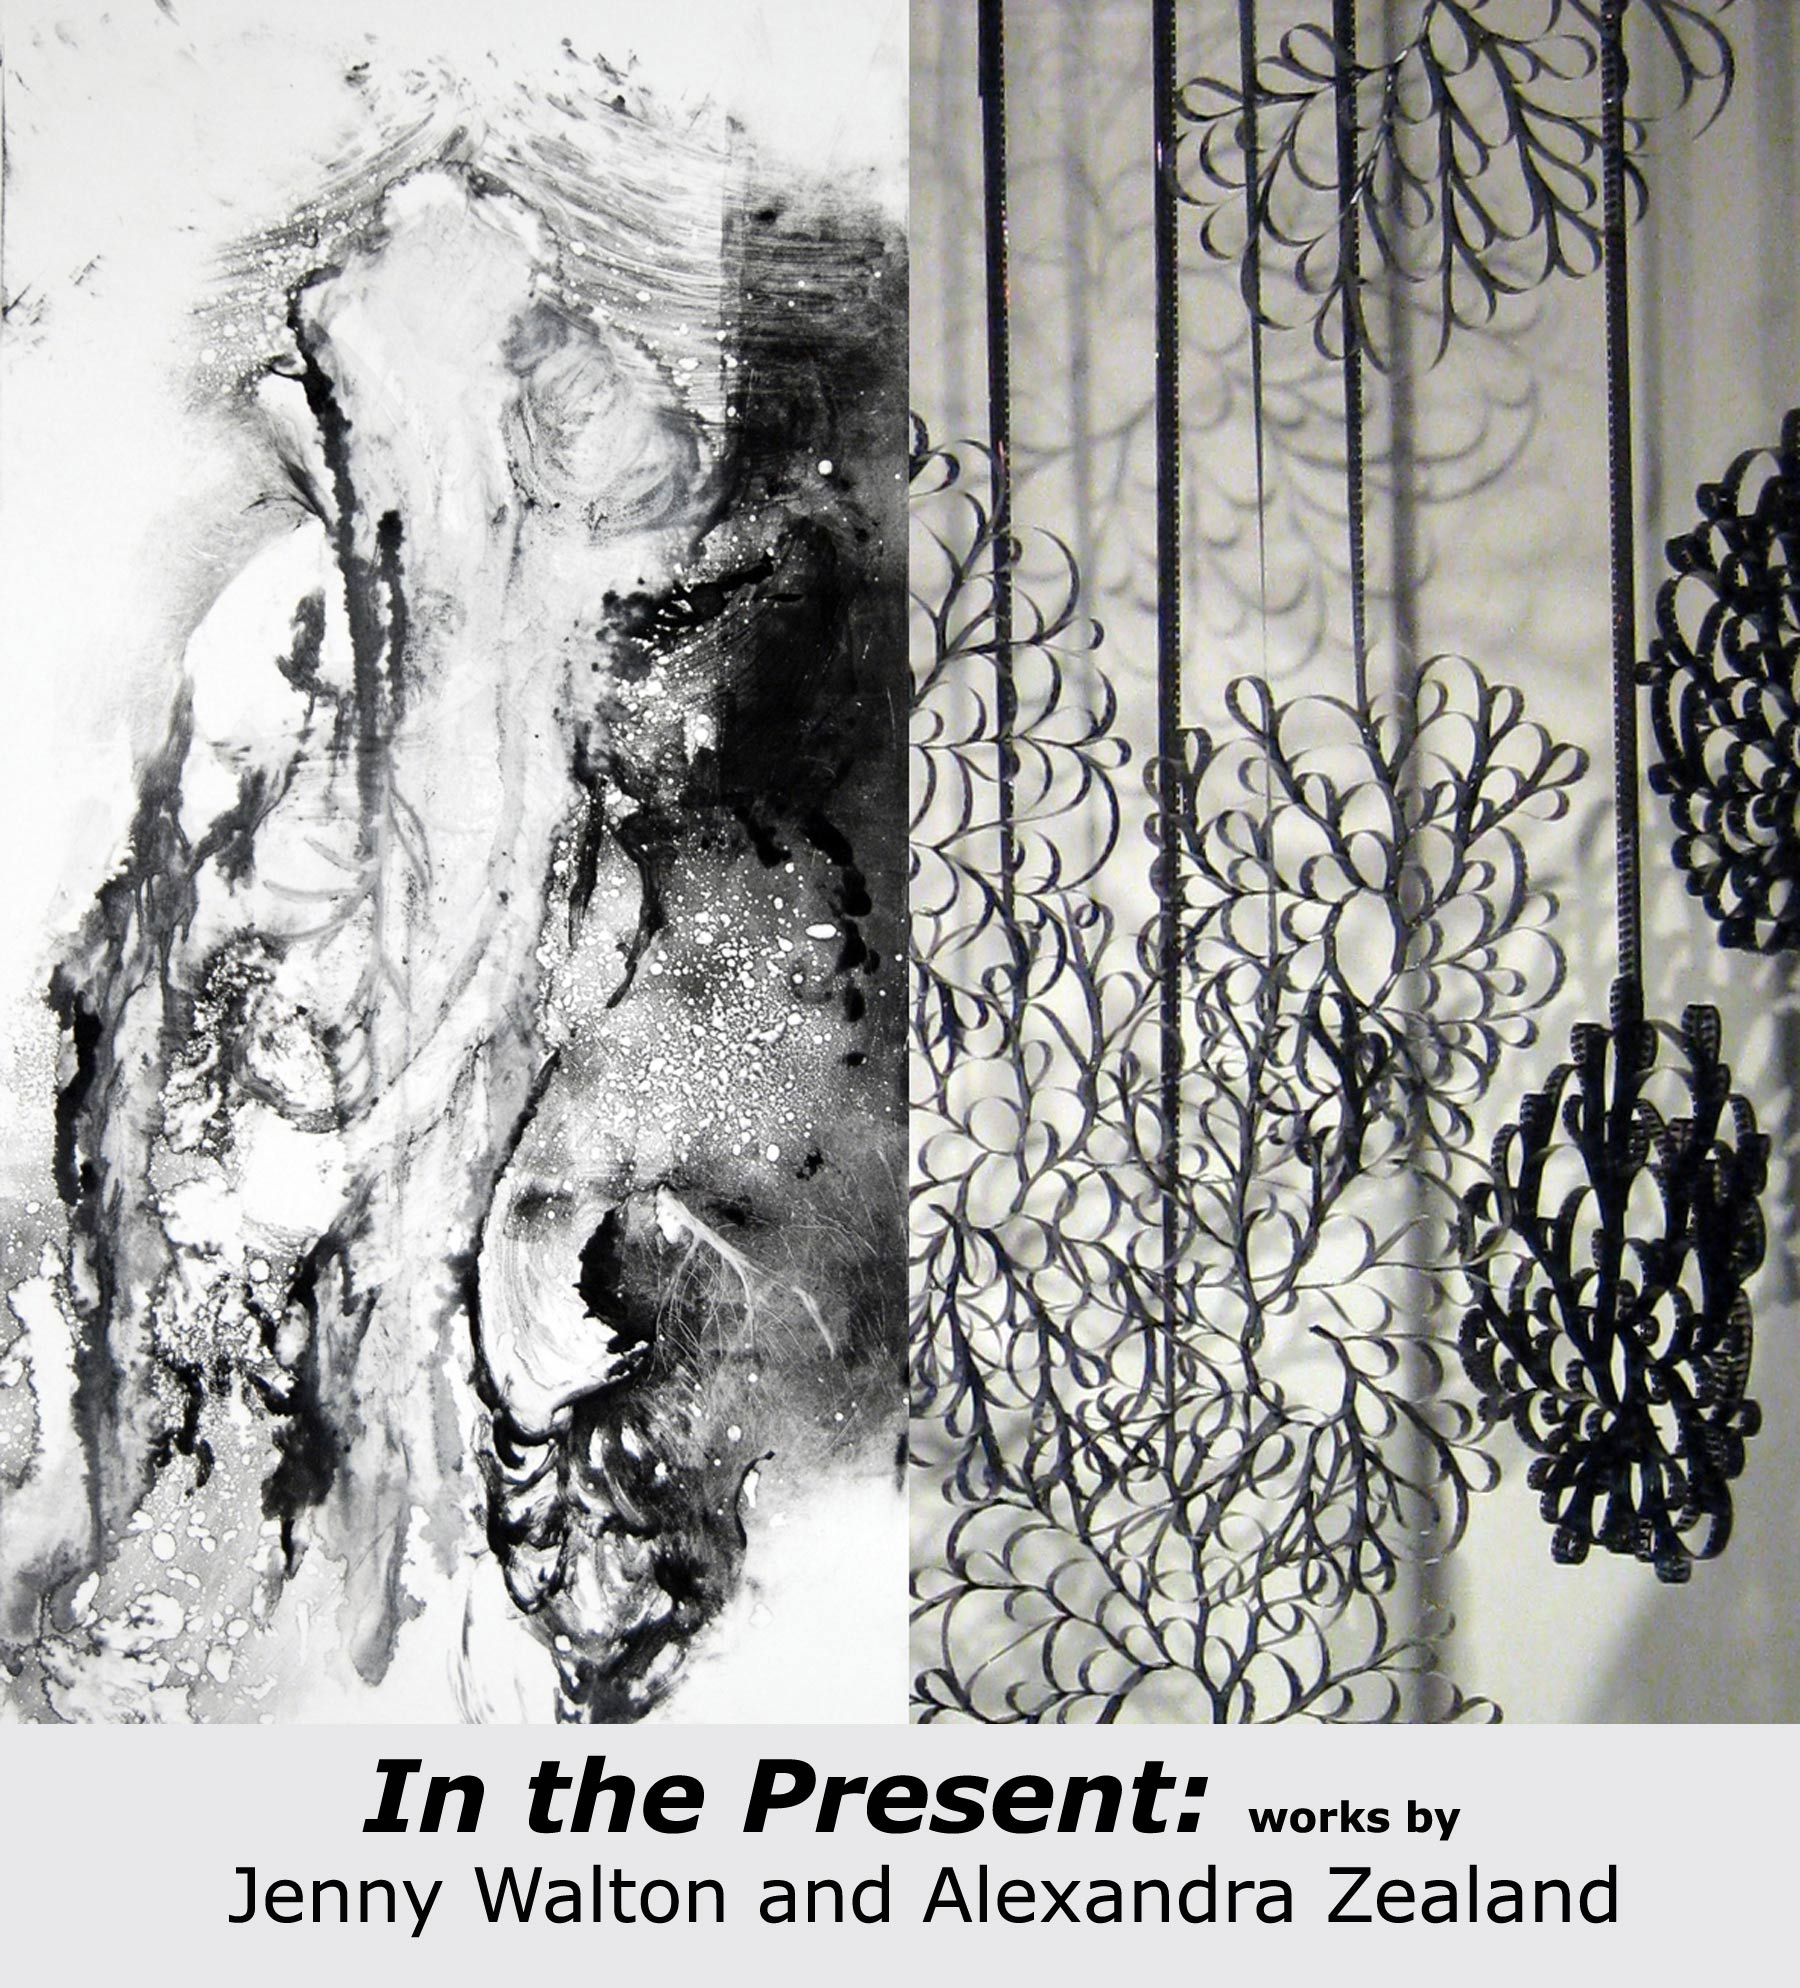 In the Present: works by Jenny Walton and Alexandra Zealand